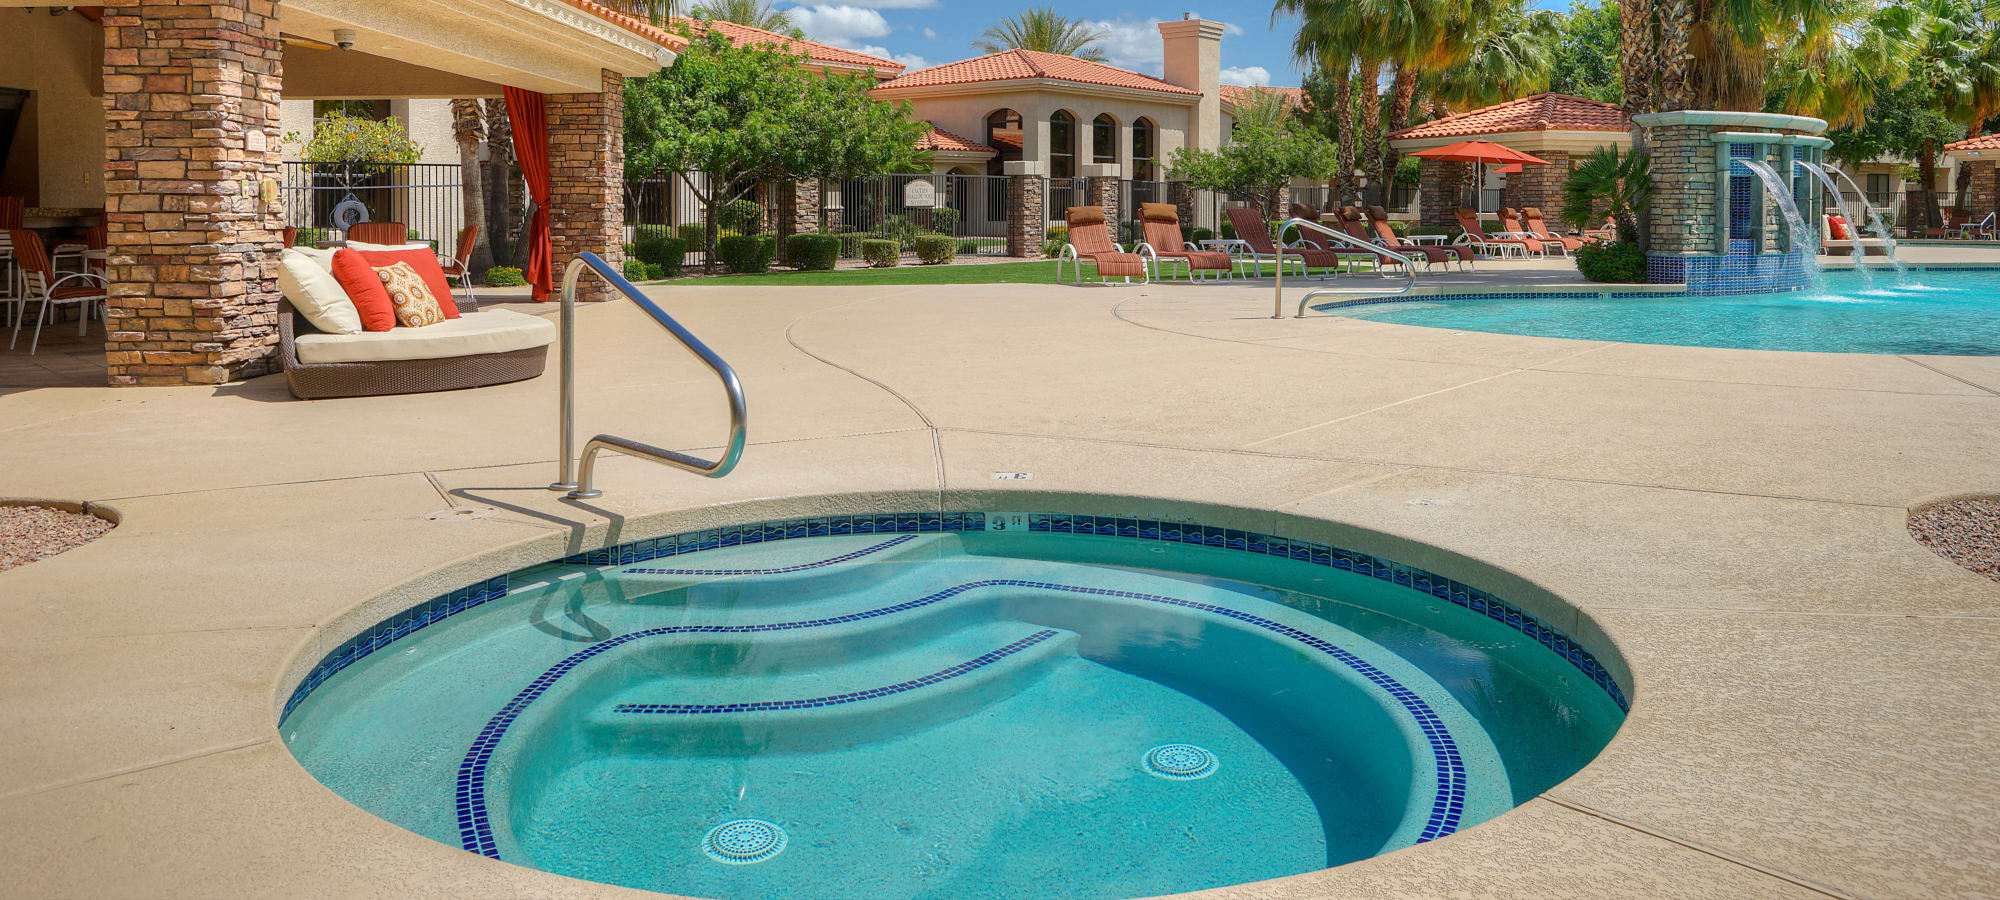 A relaxing spa on a sunny day at San Palacio in Chandler, Arizona